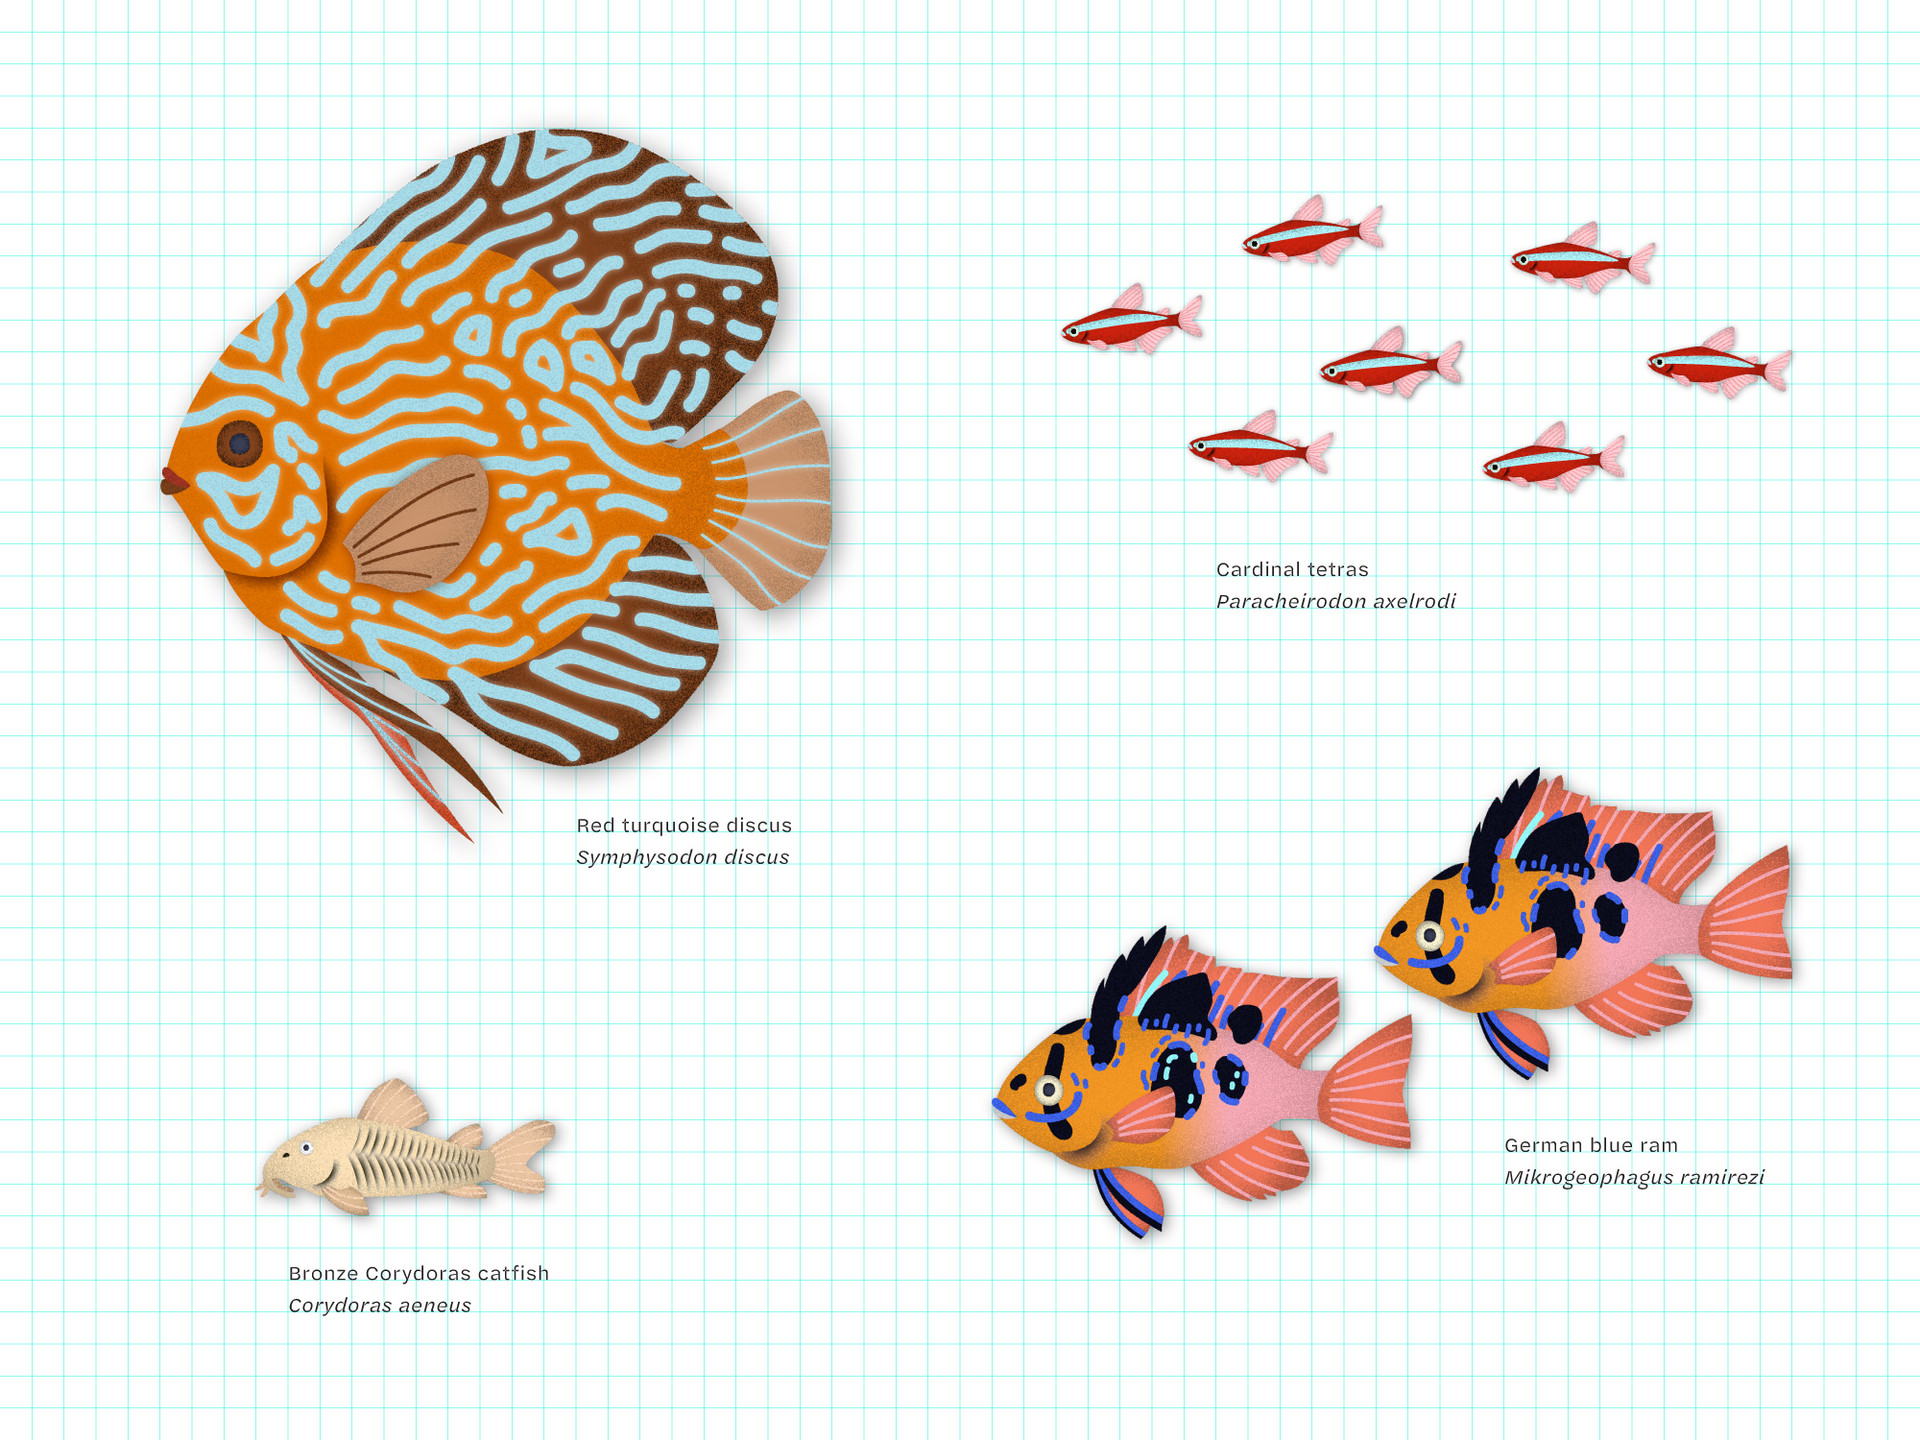 triet-pham_aquarium-fish-illustration-01